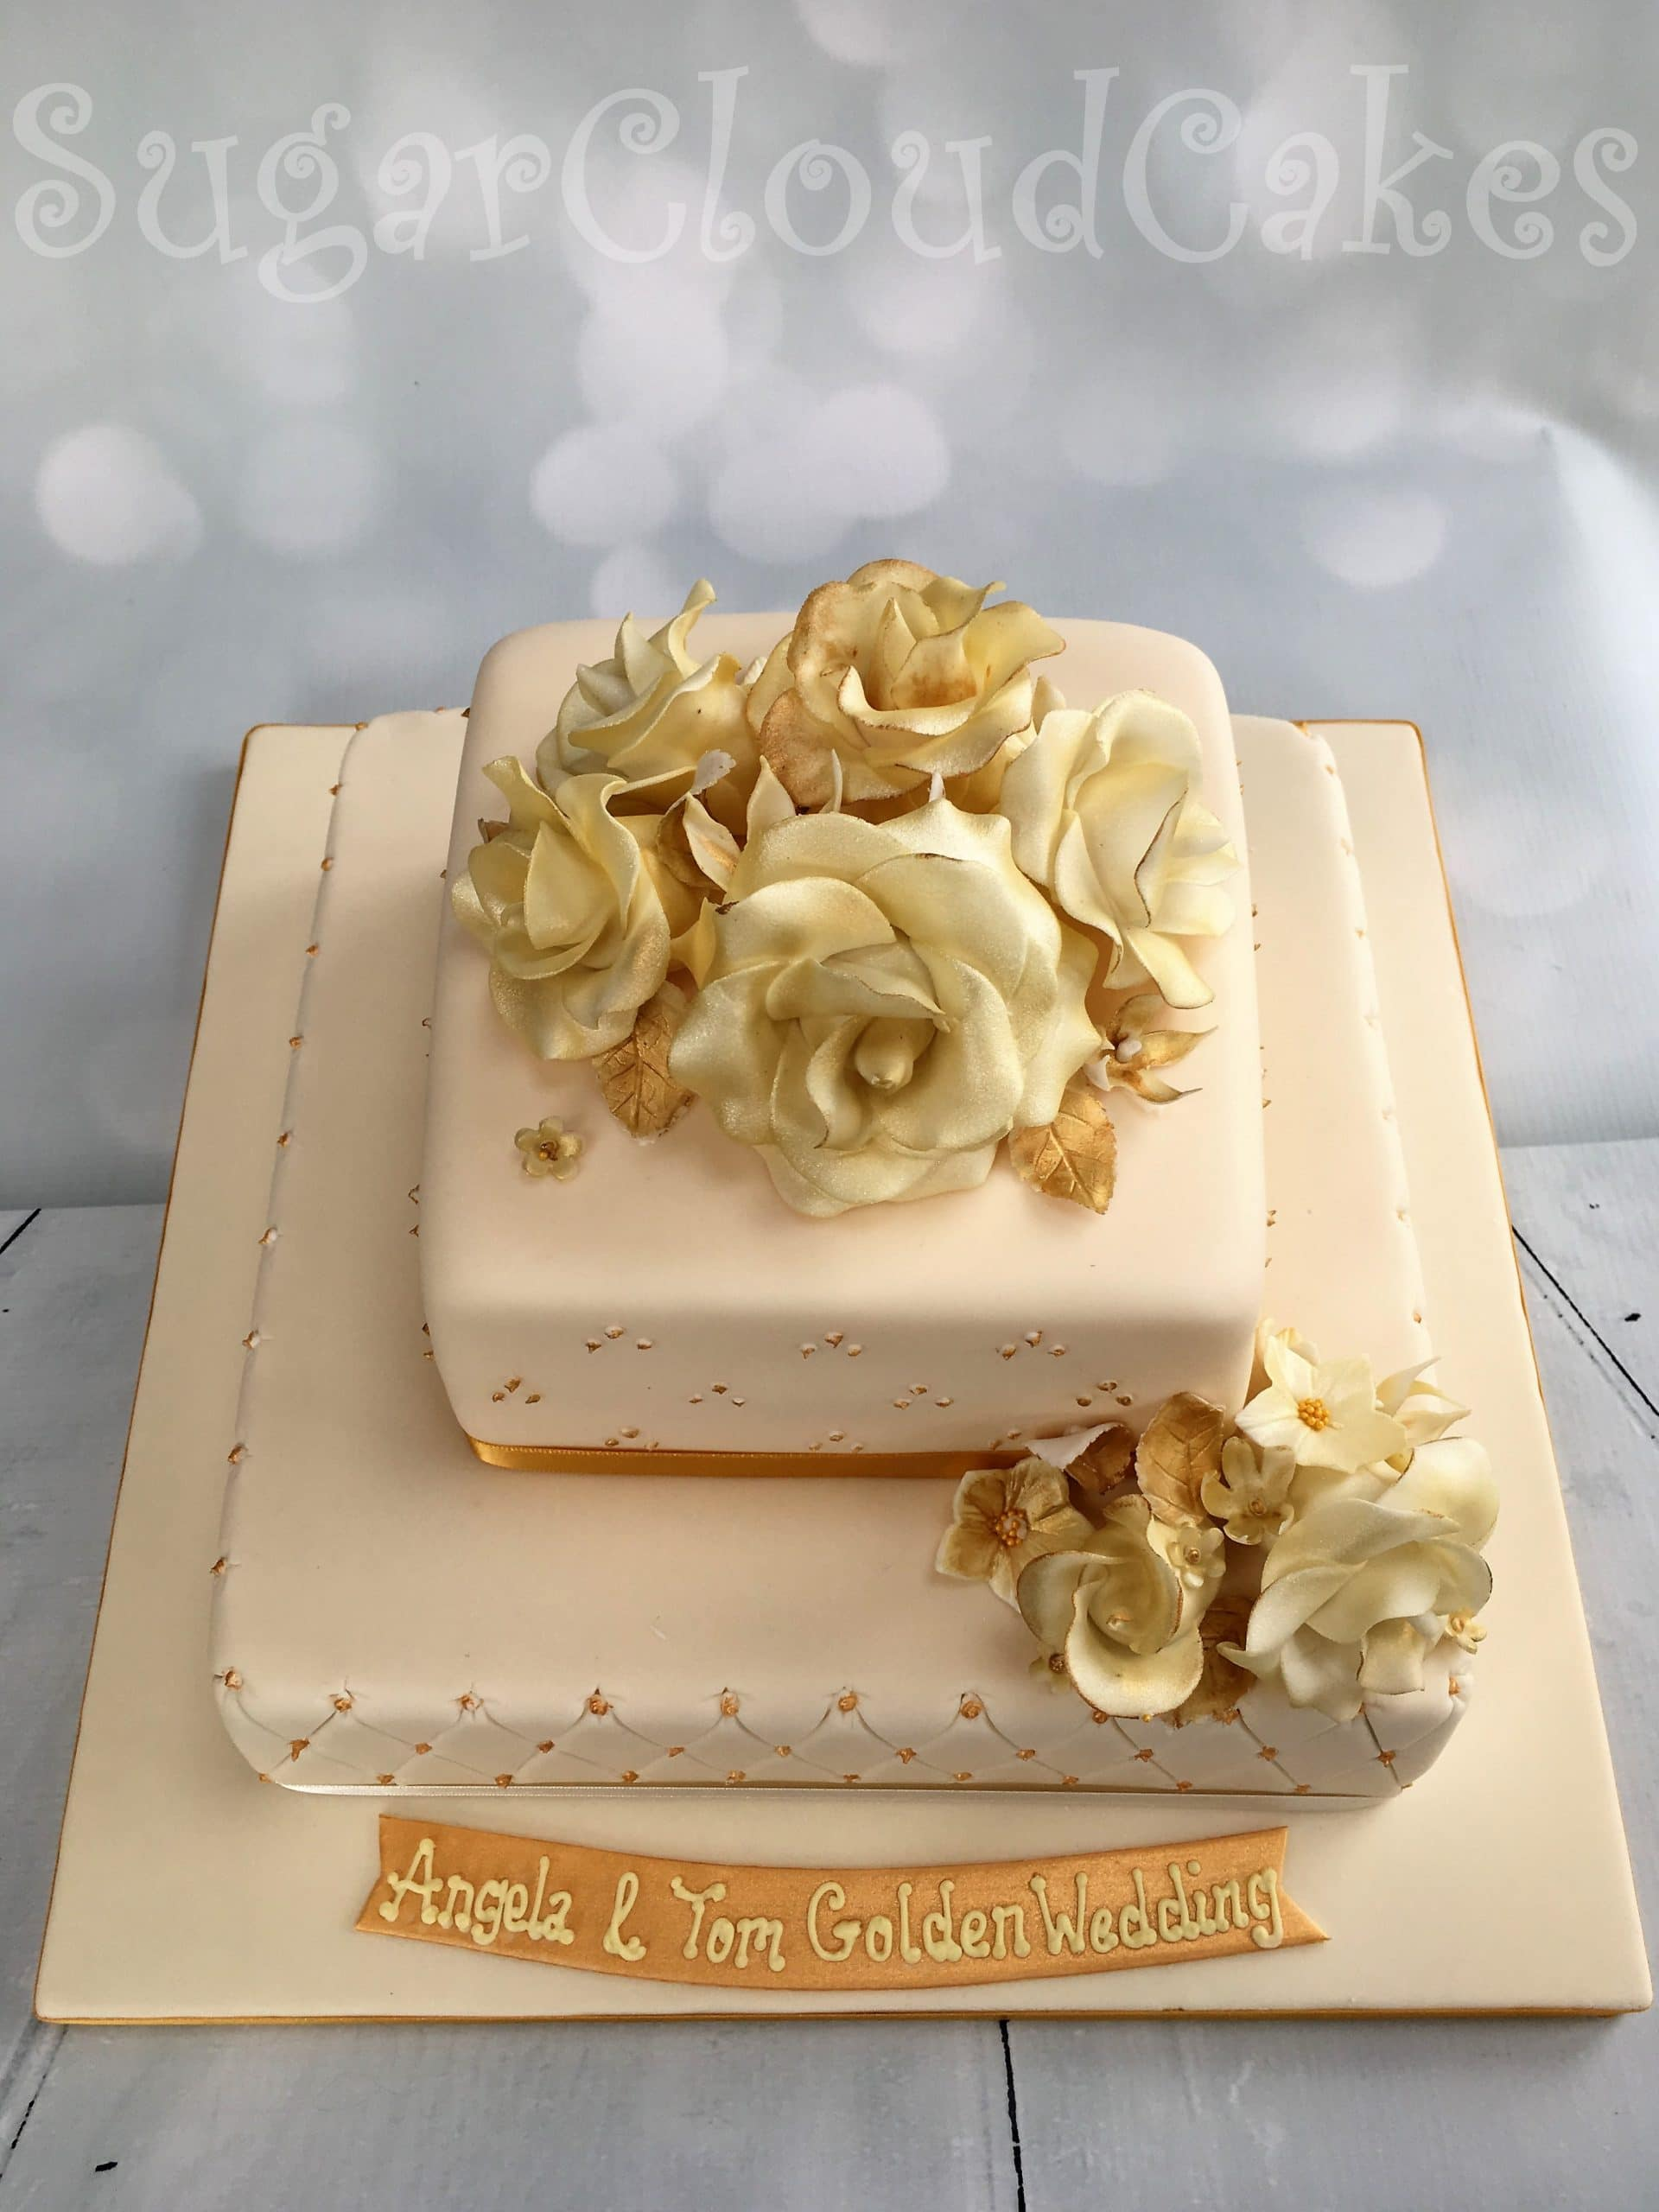 Sugar Cloud Cakes Cake Designer Nantwich Crewe Cheshire Dairy And Gluten Free Golden Wedding Anniversary Cake The Hunters Lodge Crewe